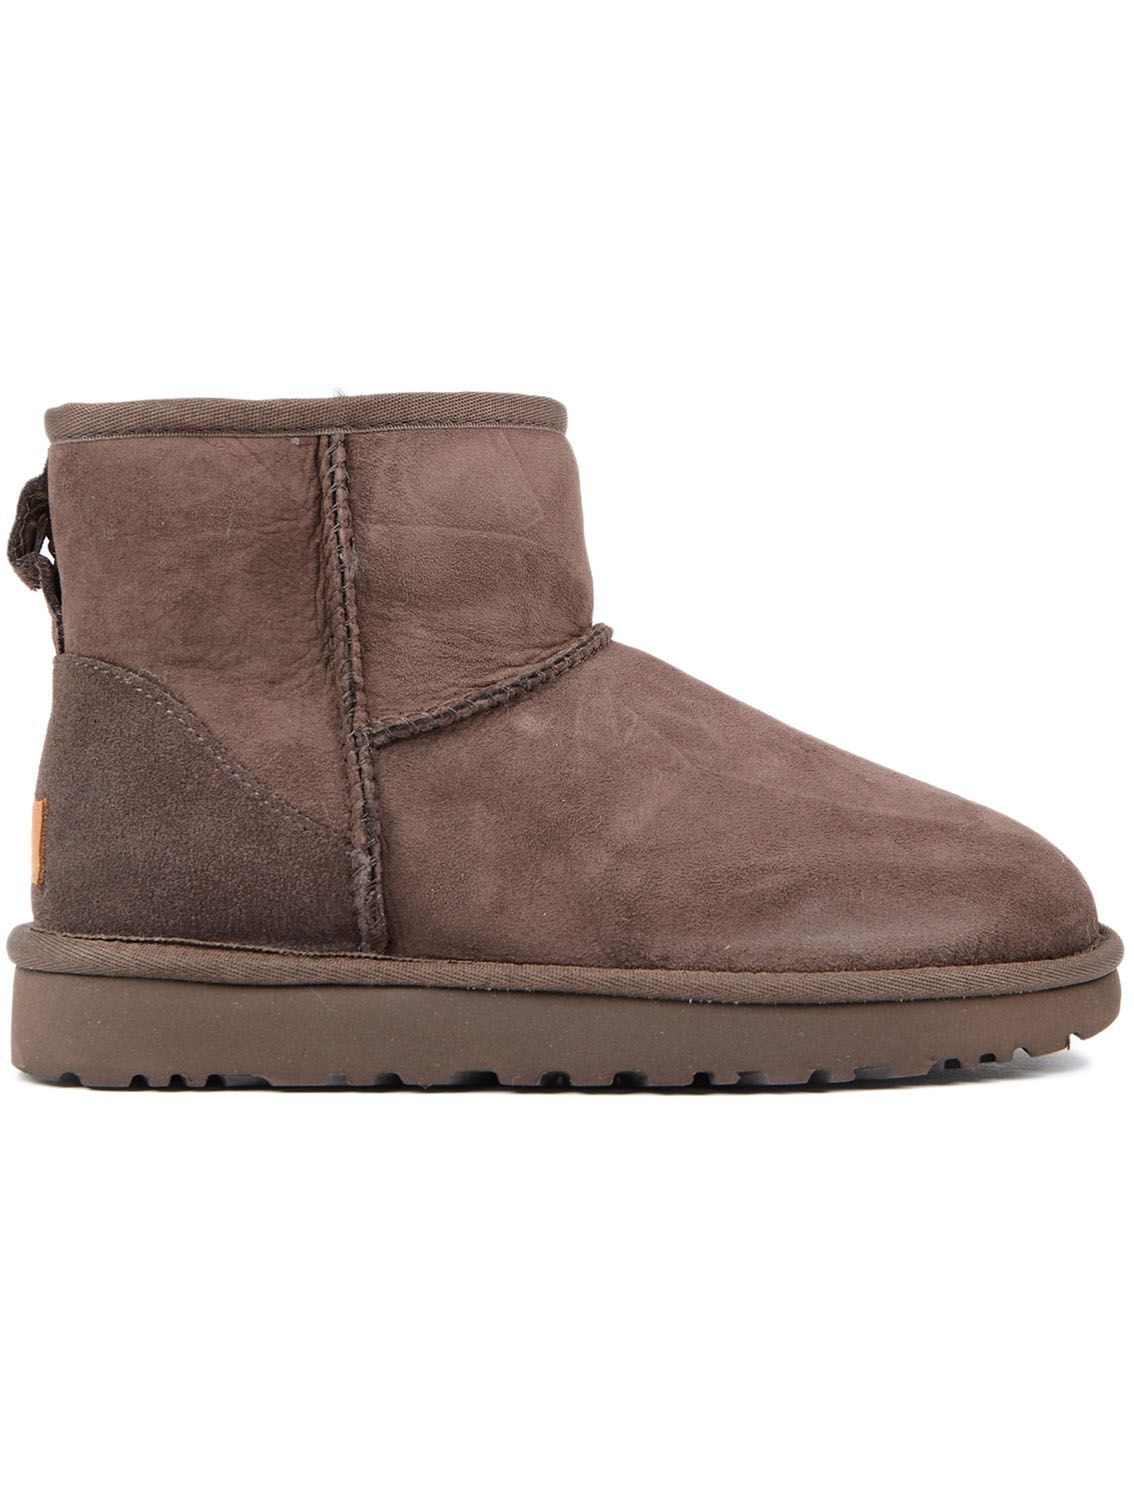 UGG Classic Ankle Boots